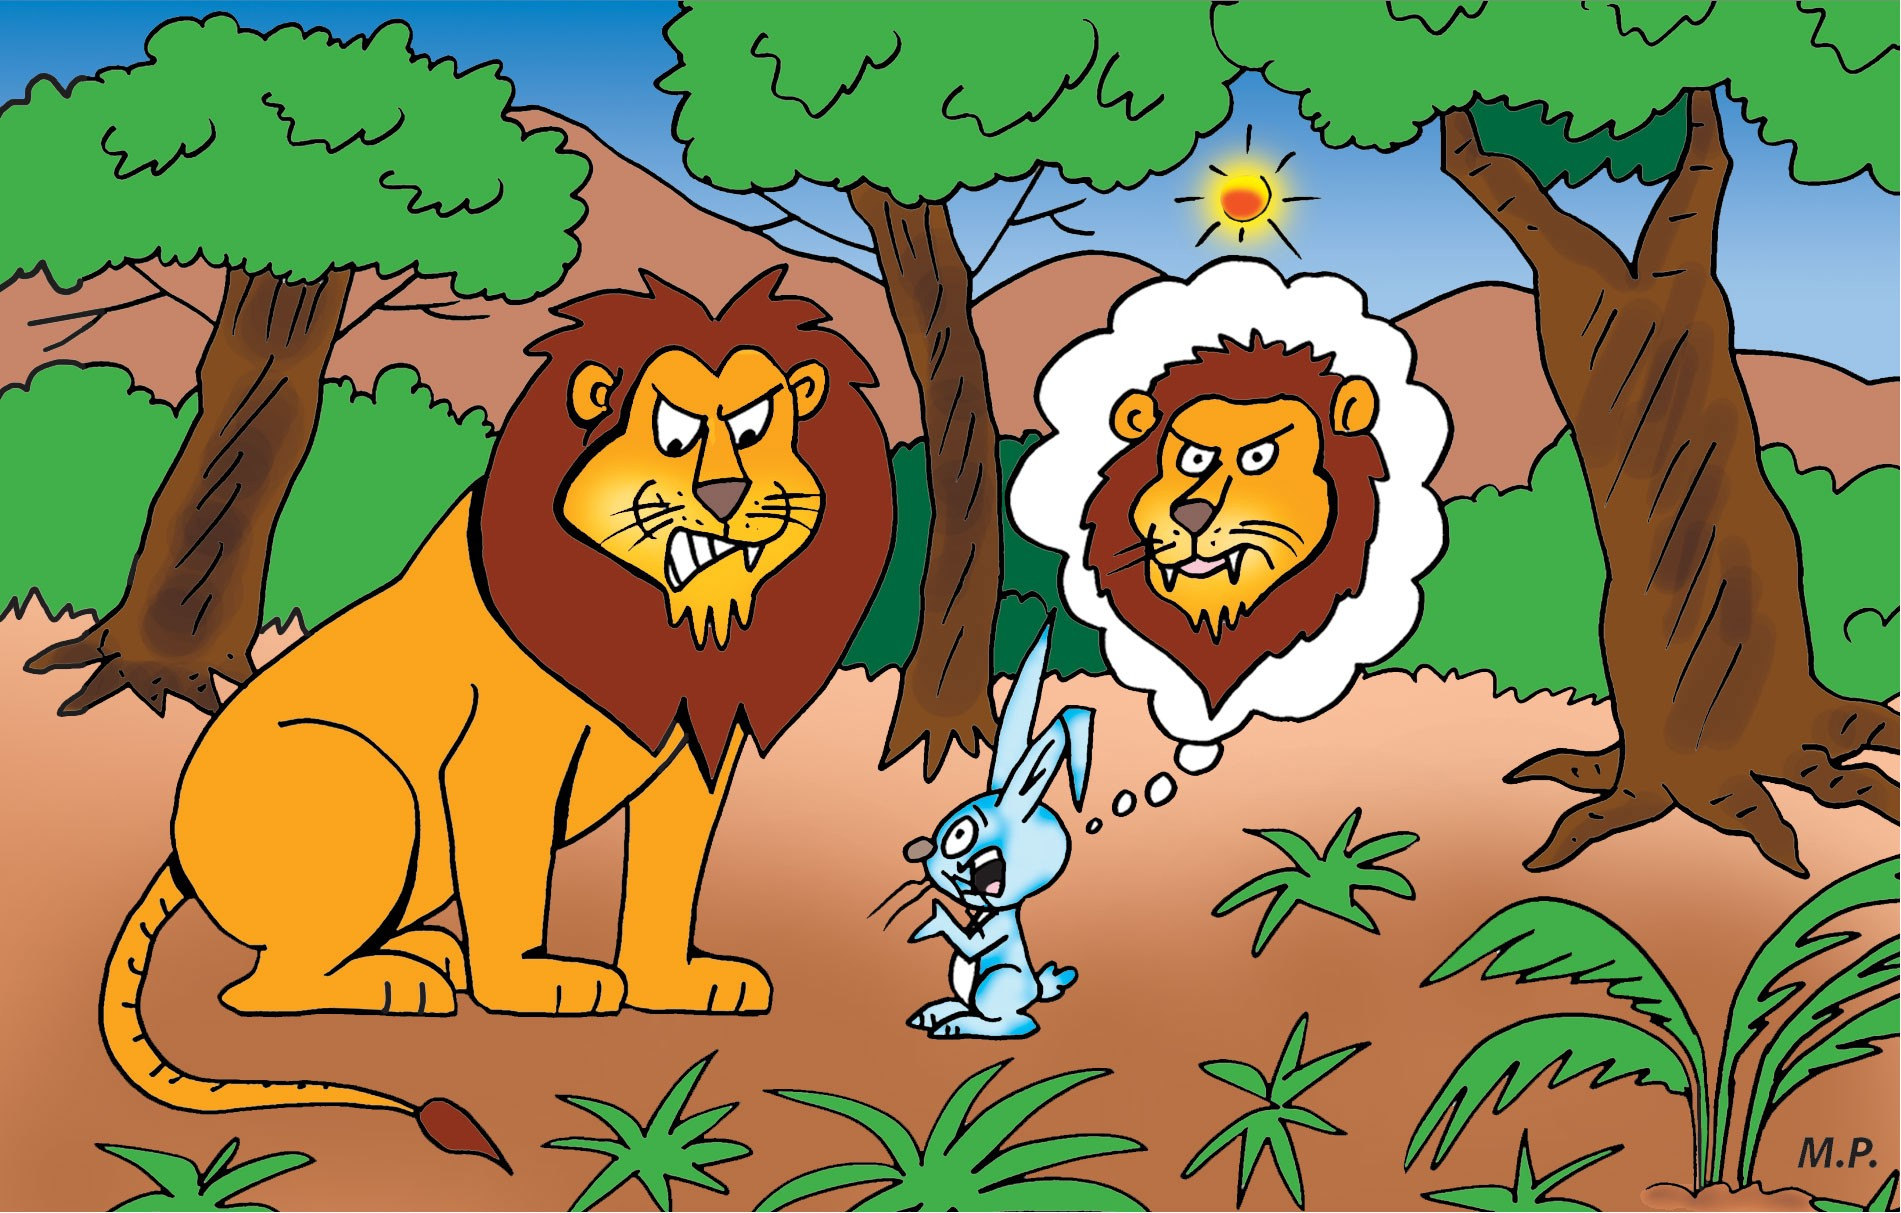 Panchatantra Tales: The lion and the hare - Katha Kids